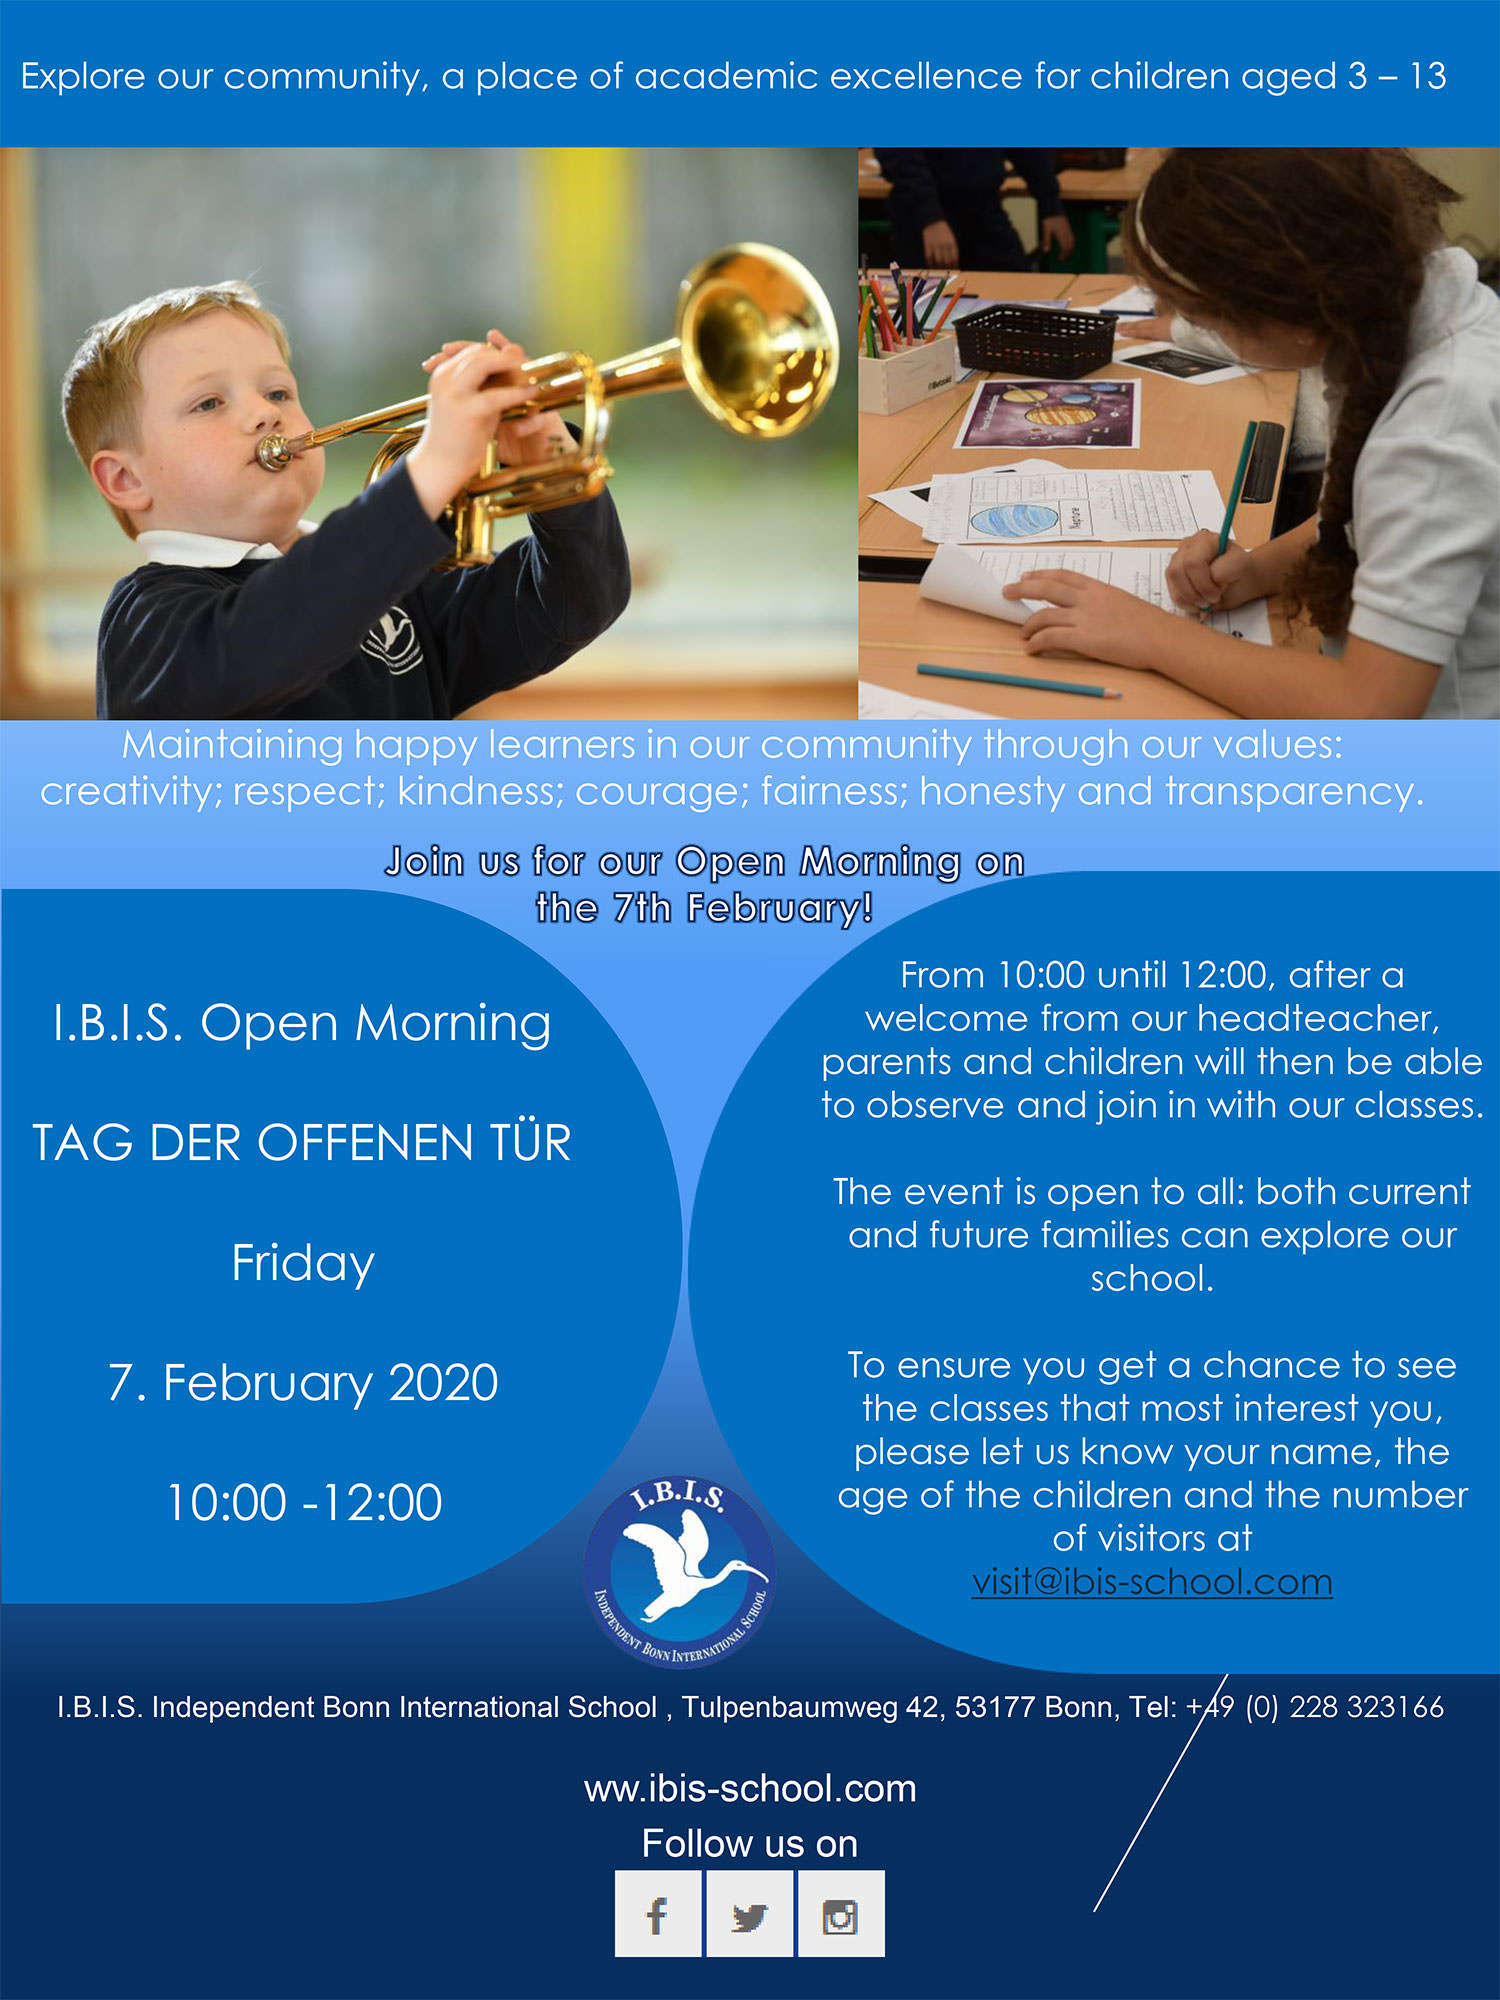 IBIS Open Morning 2020 Poster